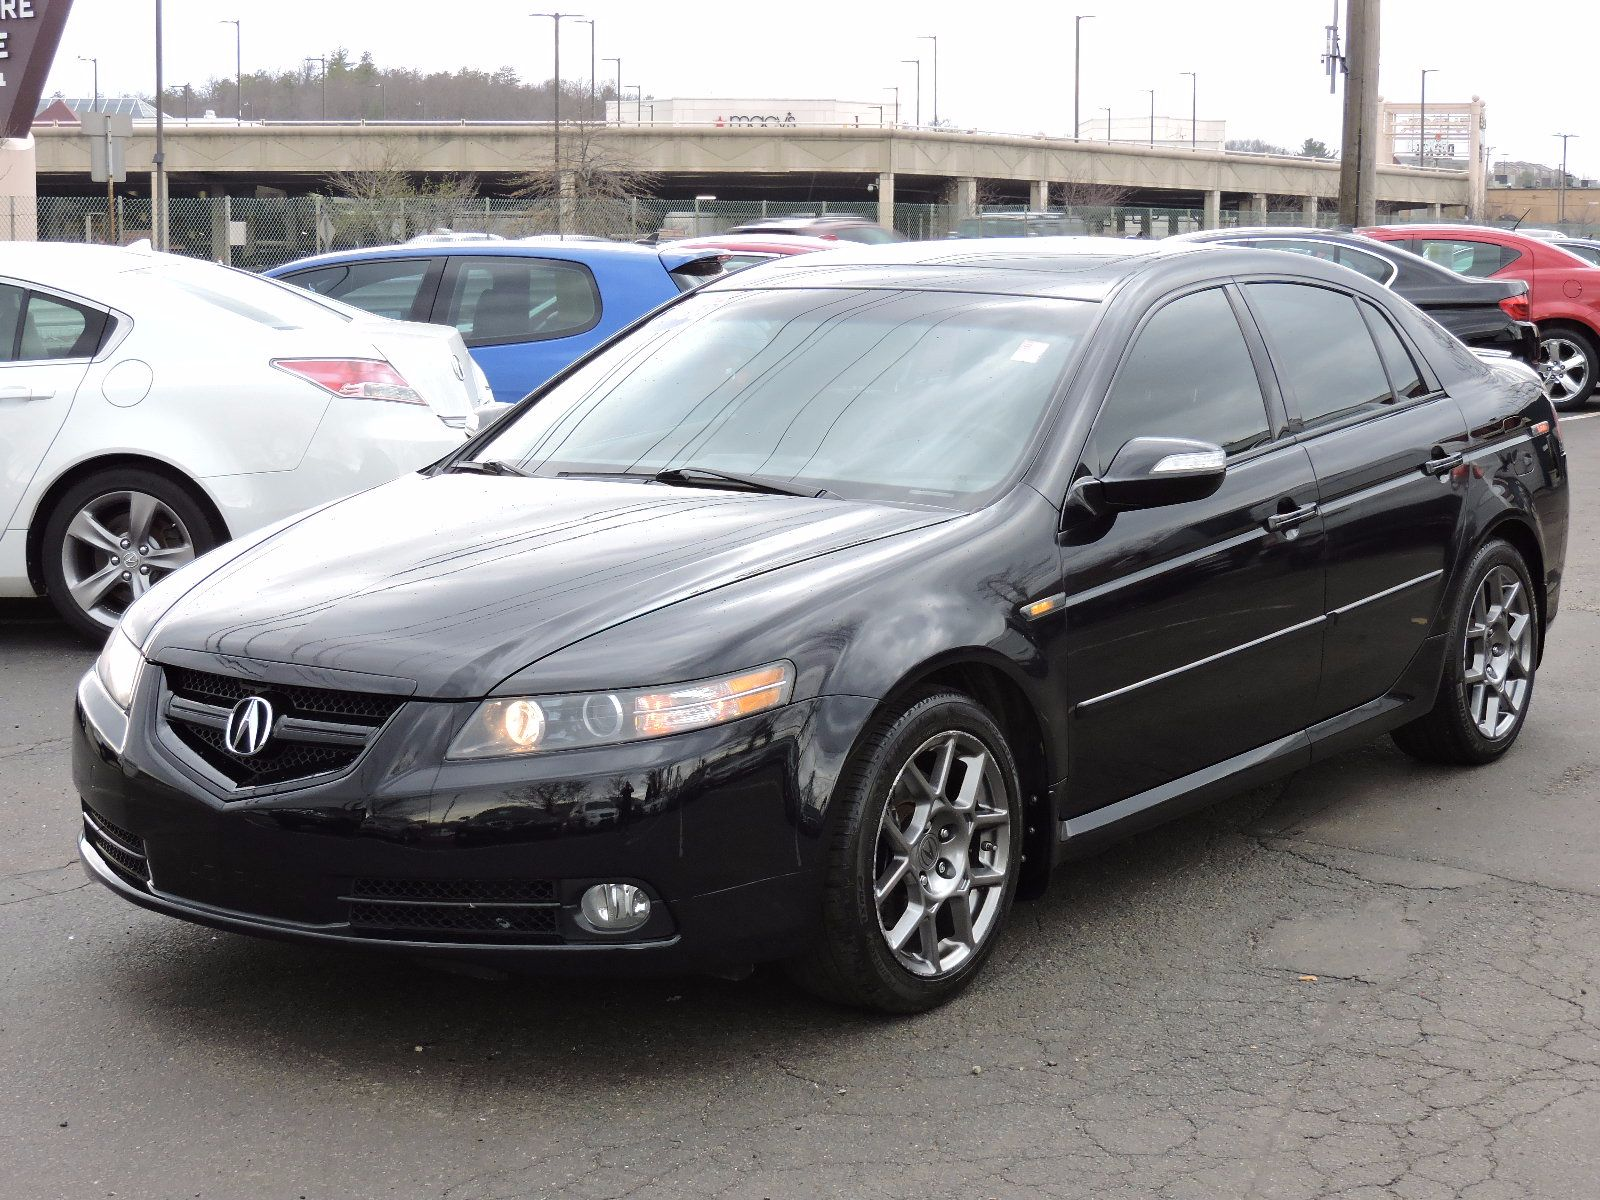 auto for click acura city tl palace by here inspirational nc sale owner of elegant